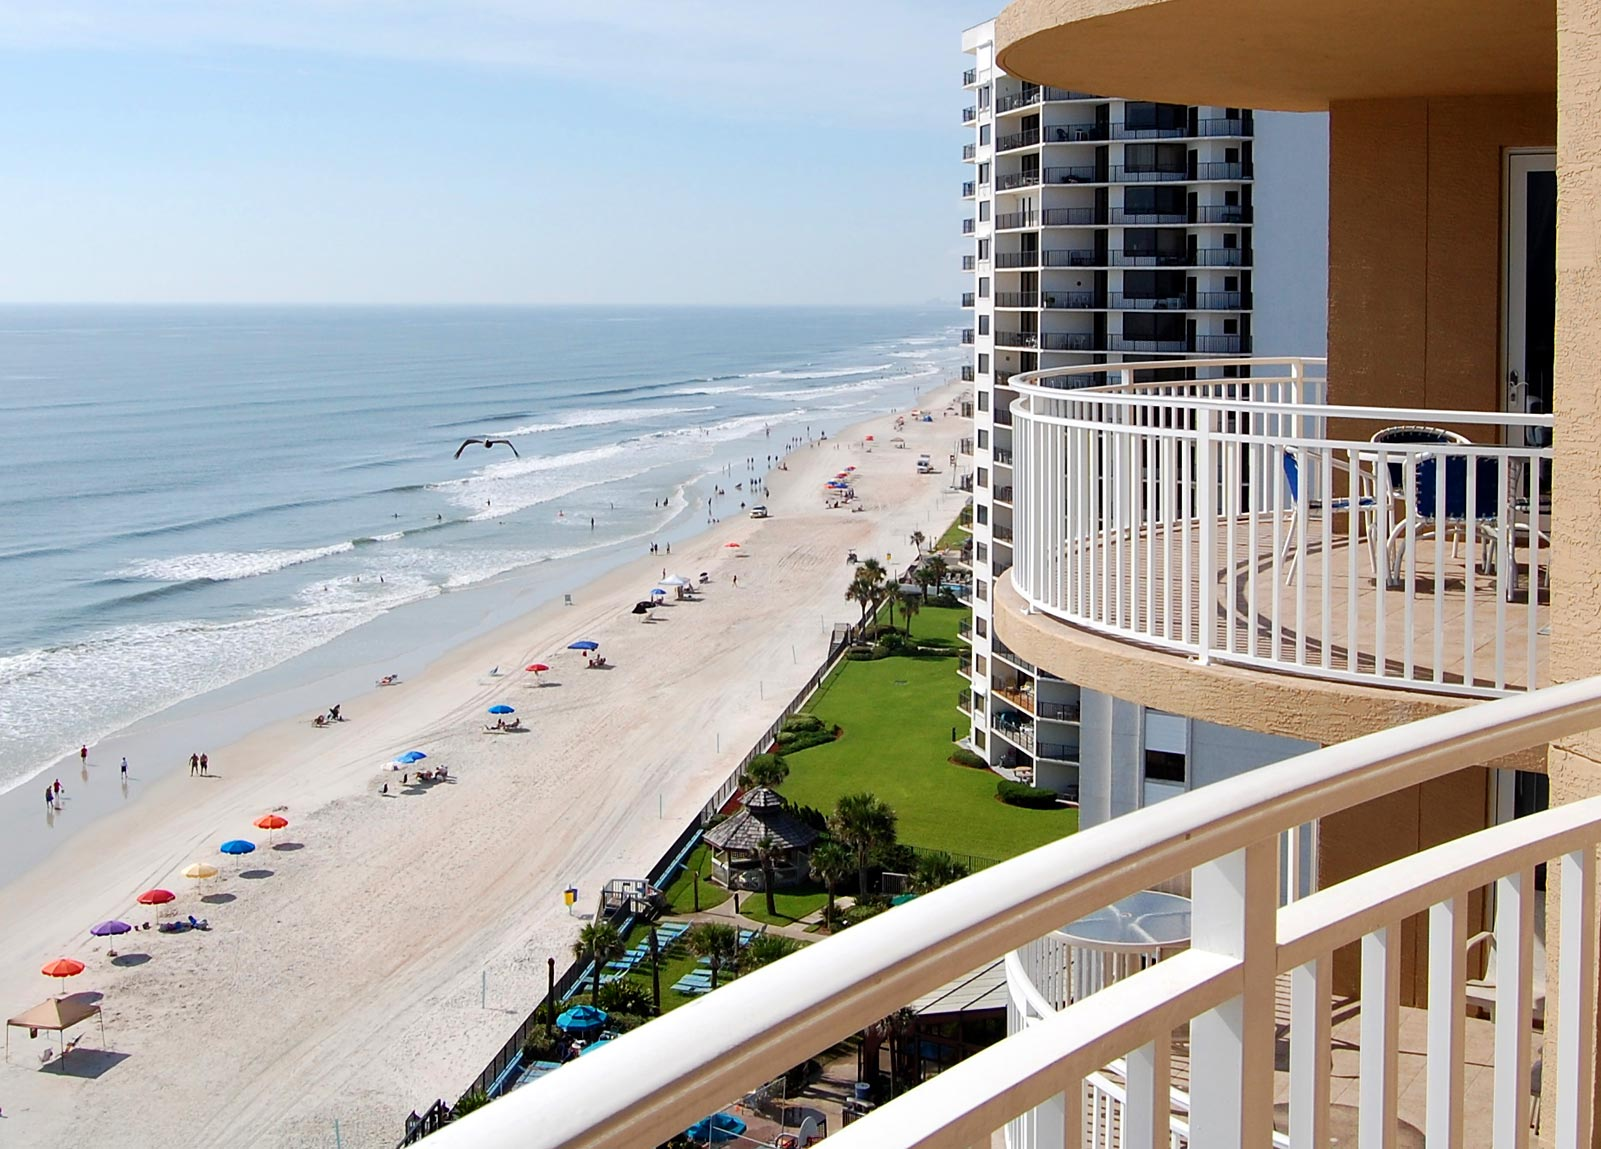 Oceanfront Hotels In Daytona Beach Fl